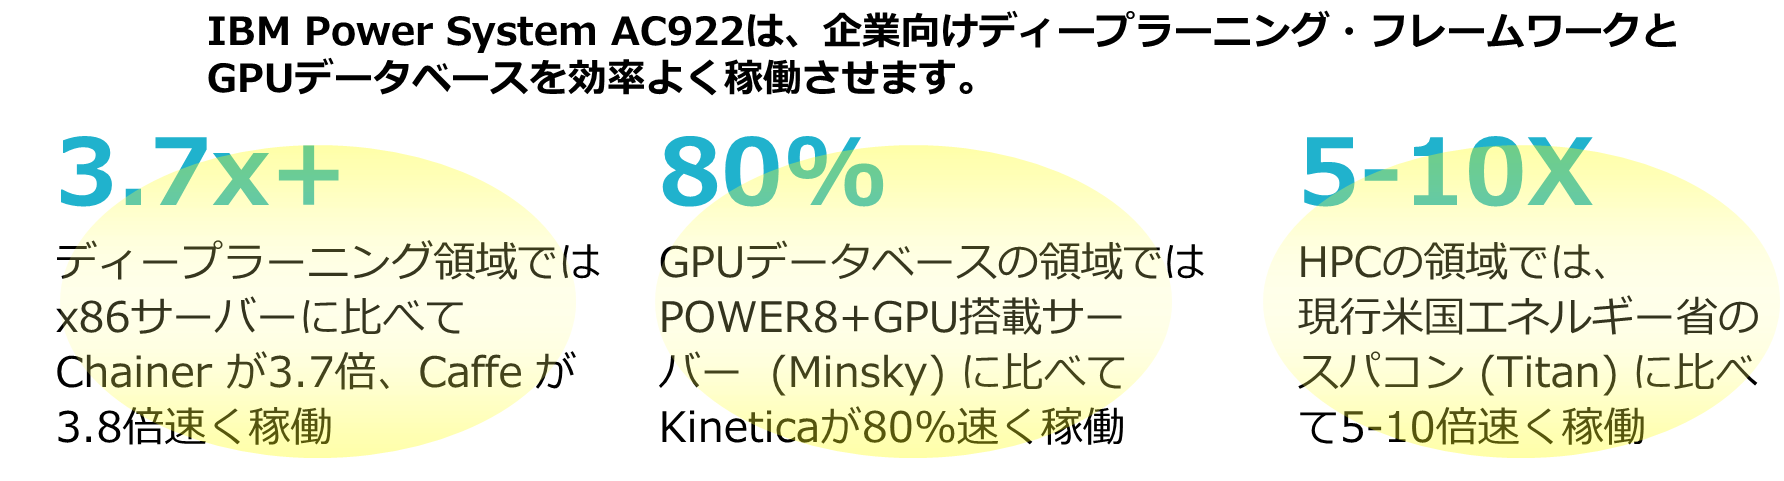 power9_02.png